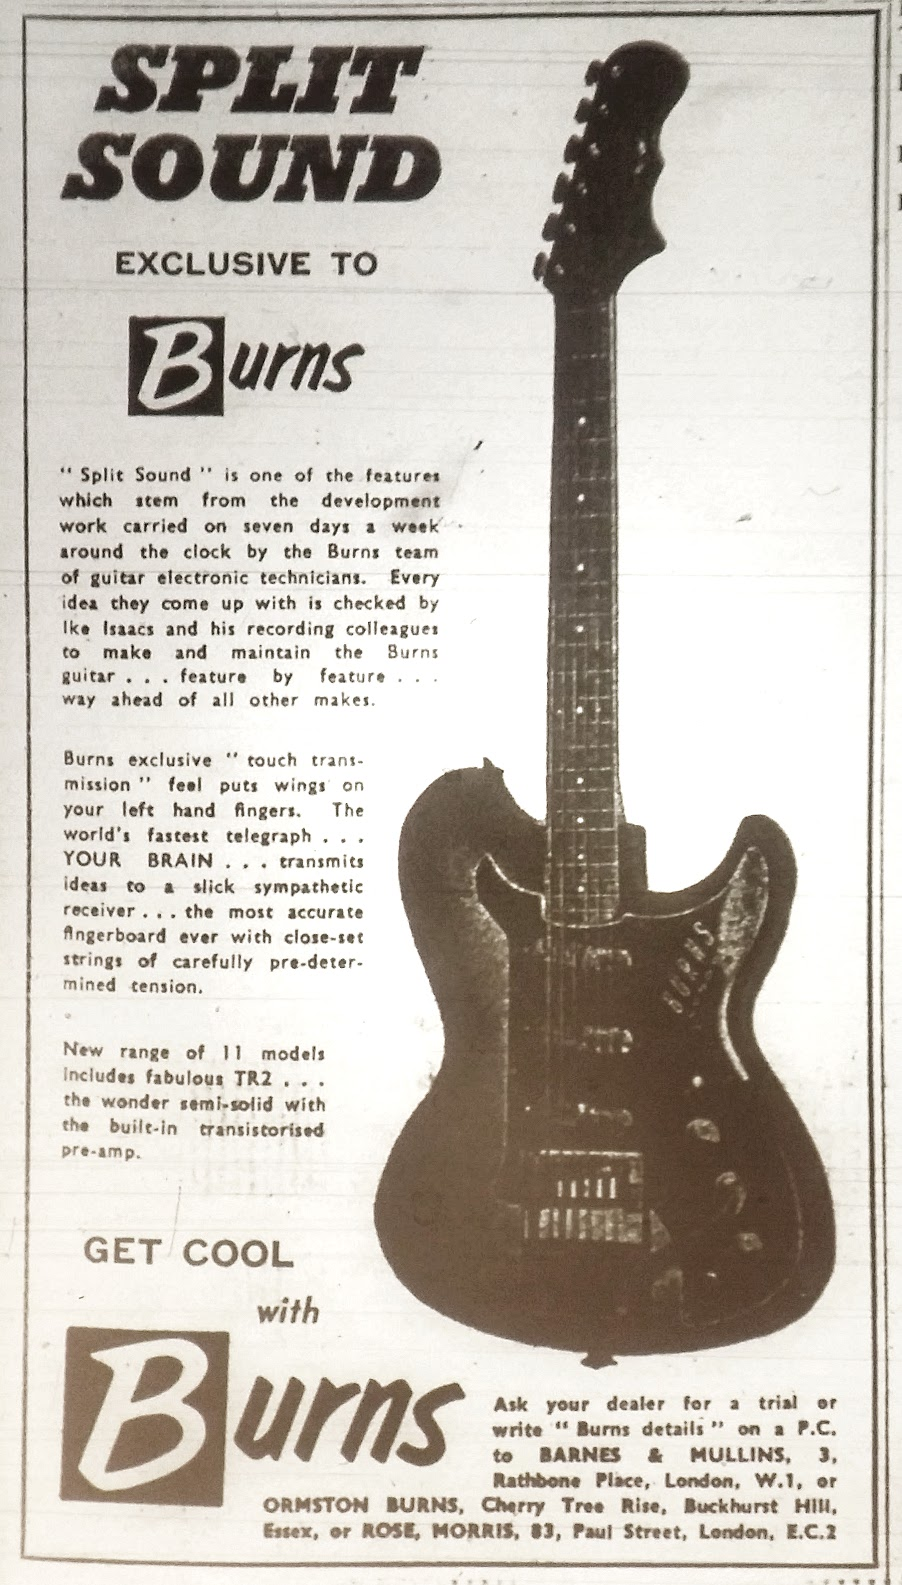 Burns Vista-Sonic & Split Sonic Guitar & Bass Reference Page